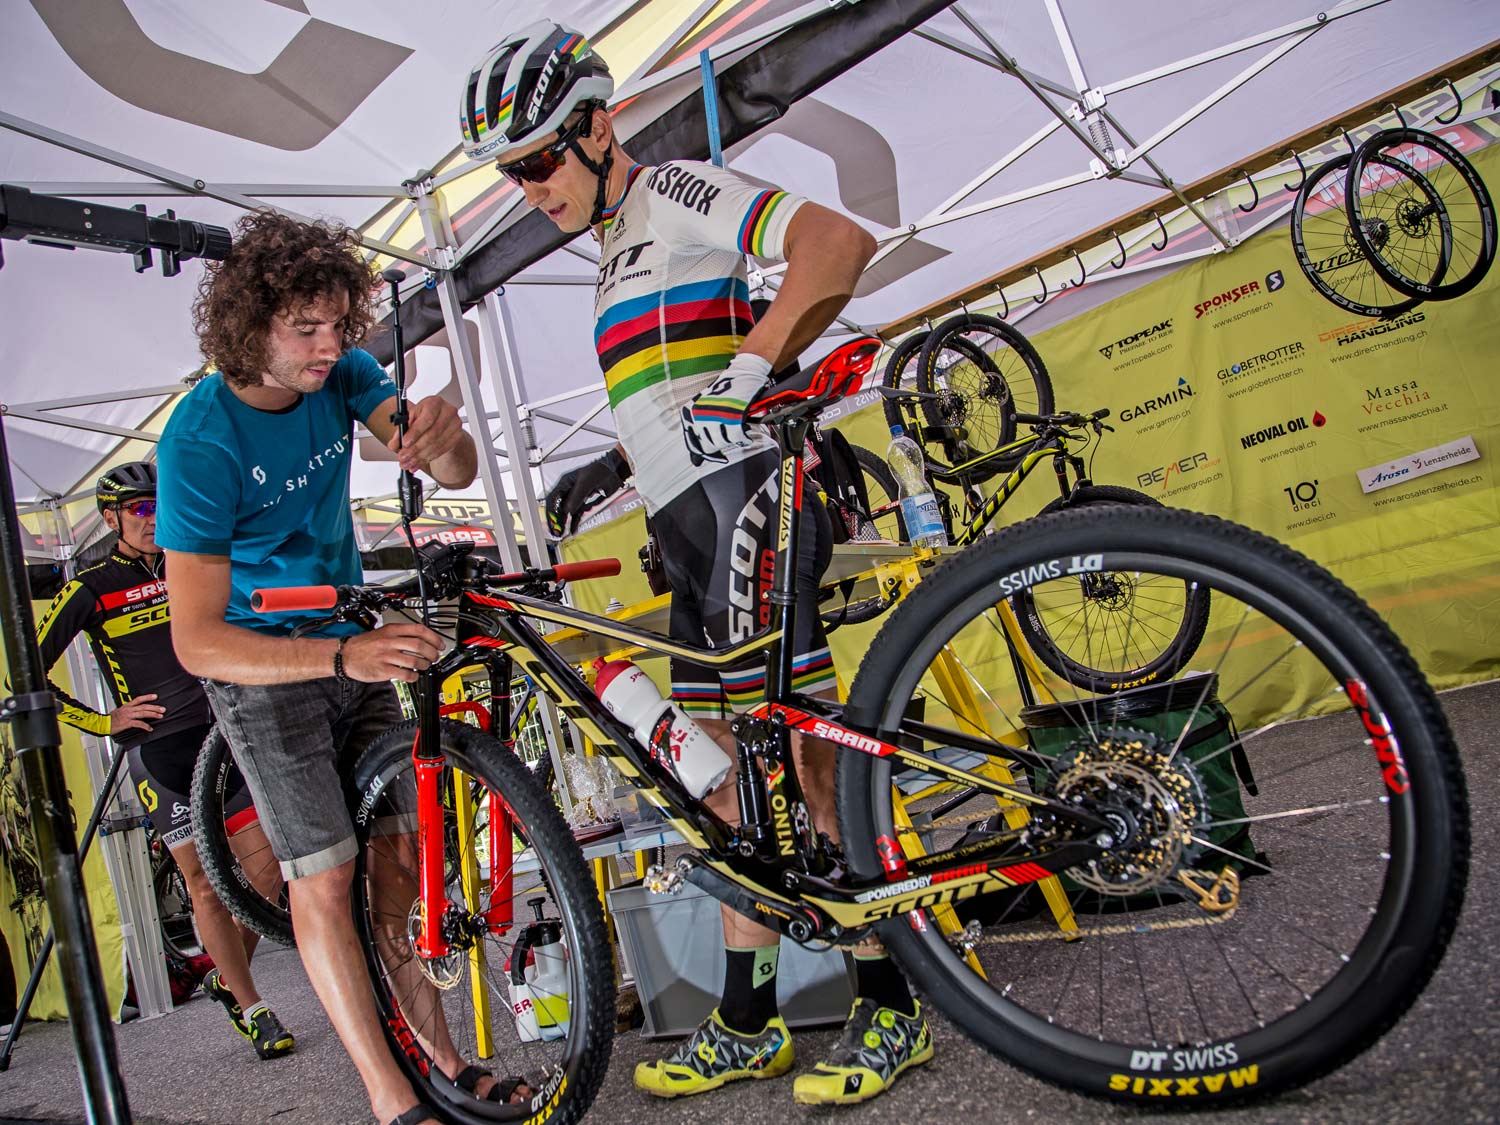 How to Set Up your suspension with Yanick the Mechanic, photos by Jochen Haar